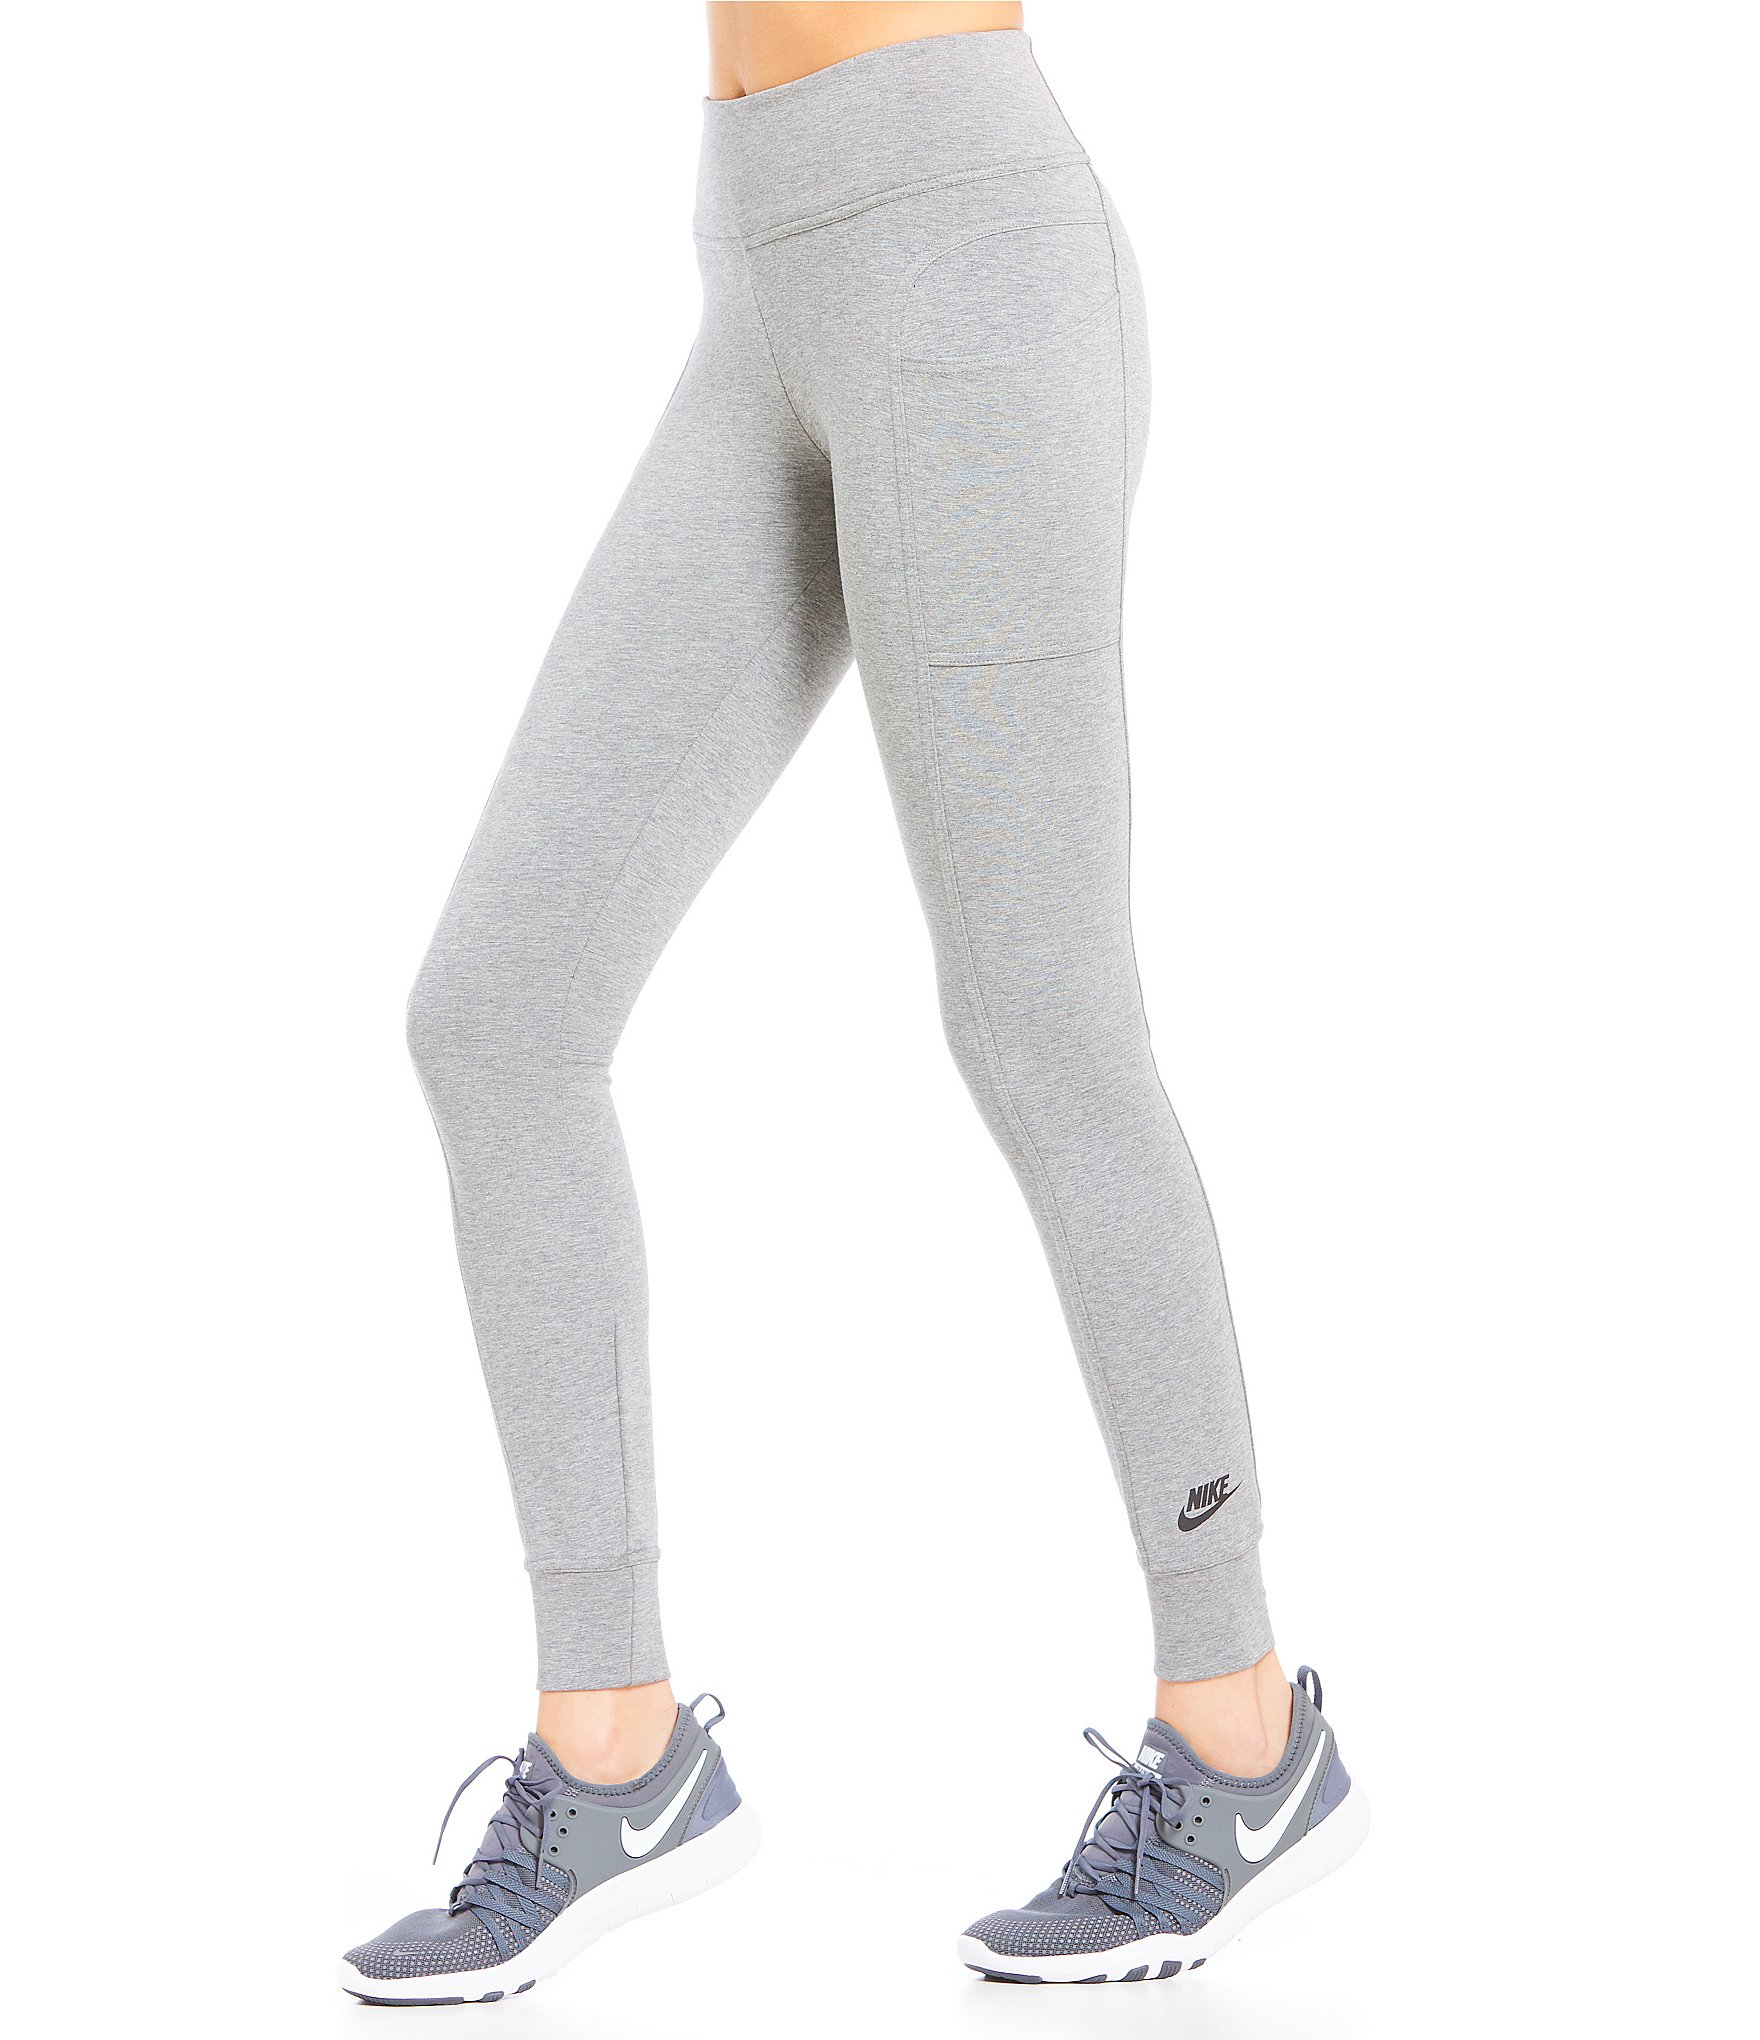 468b66504414 Nike.com CH Womens Active Workout Pants Tights Dillards ...